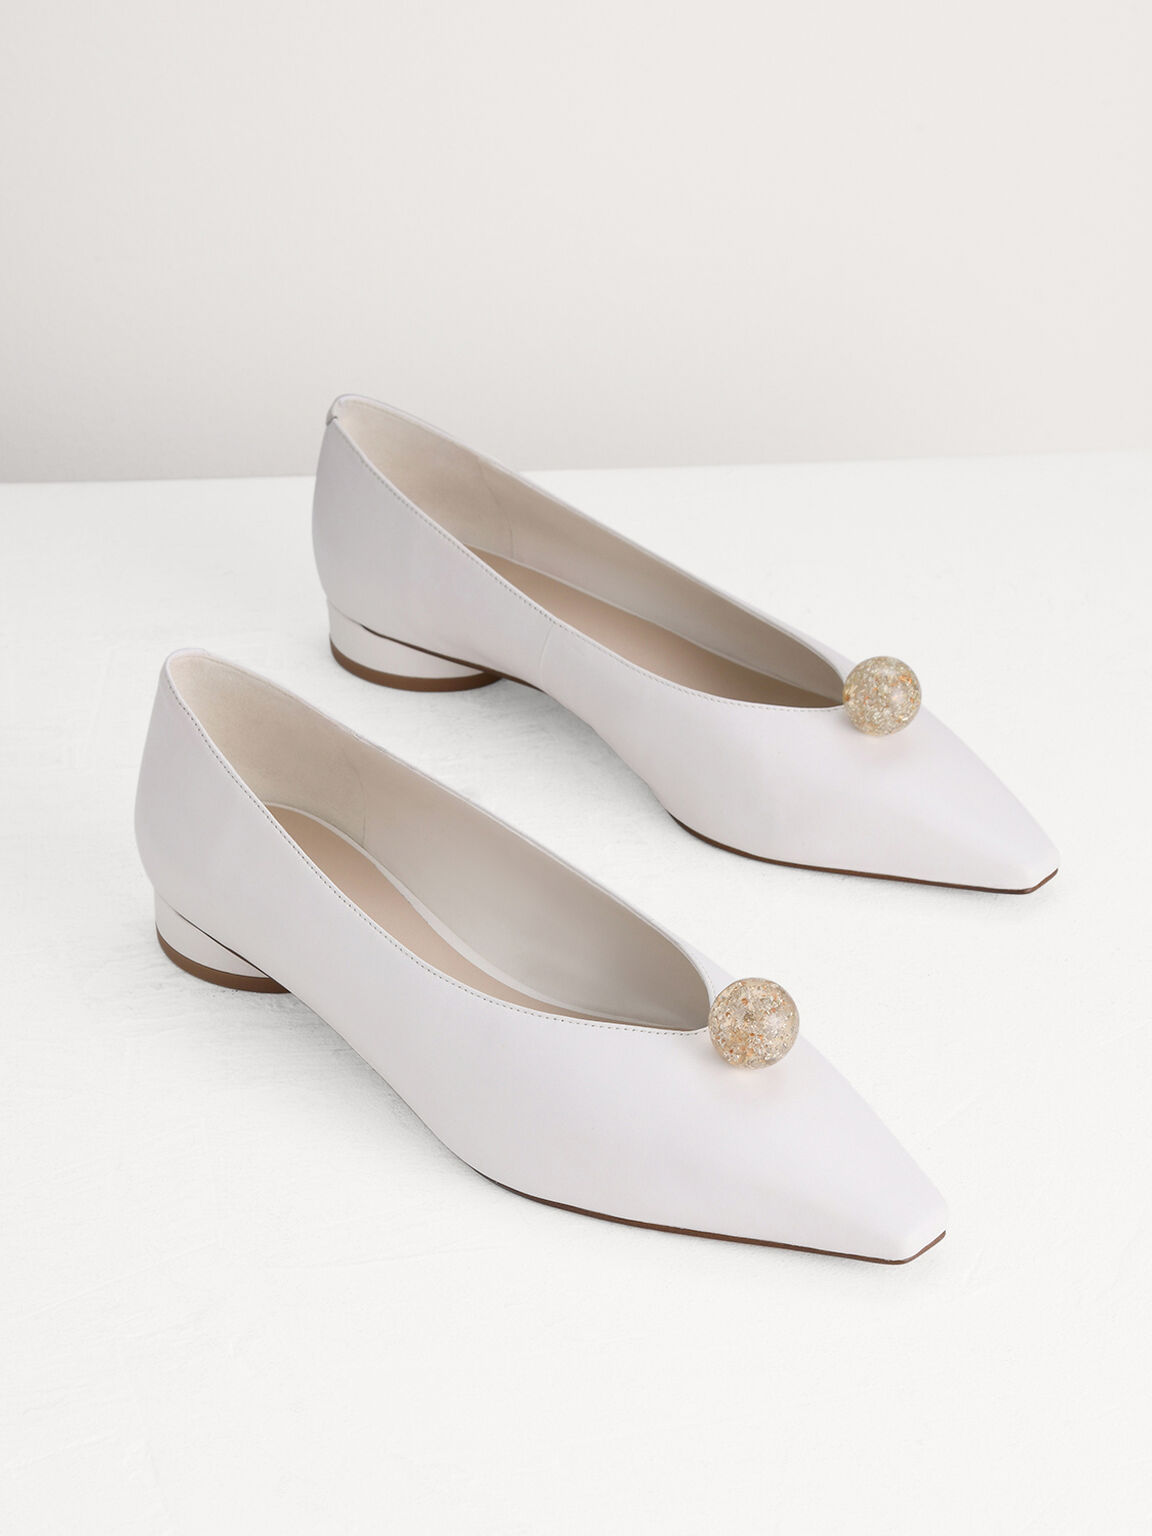 Leather Pumps with Sphere Ornament, White, hi-res